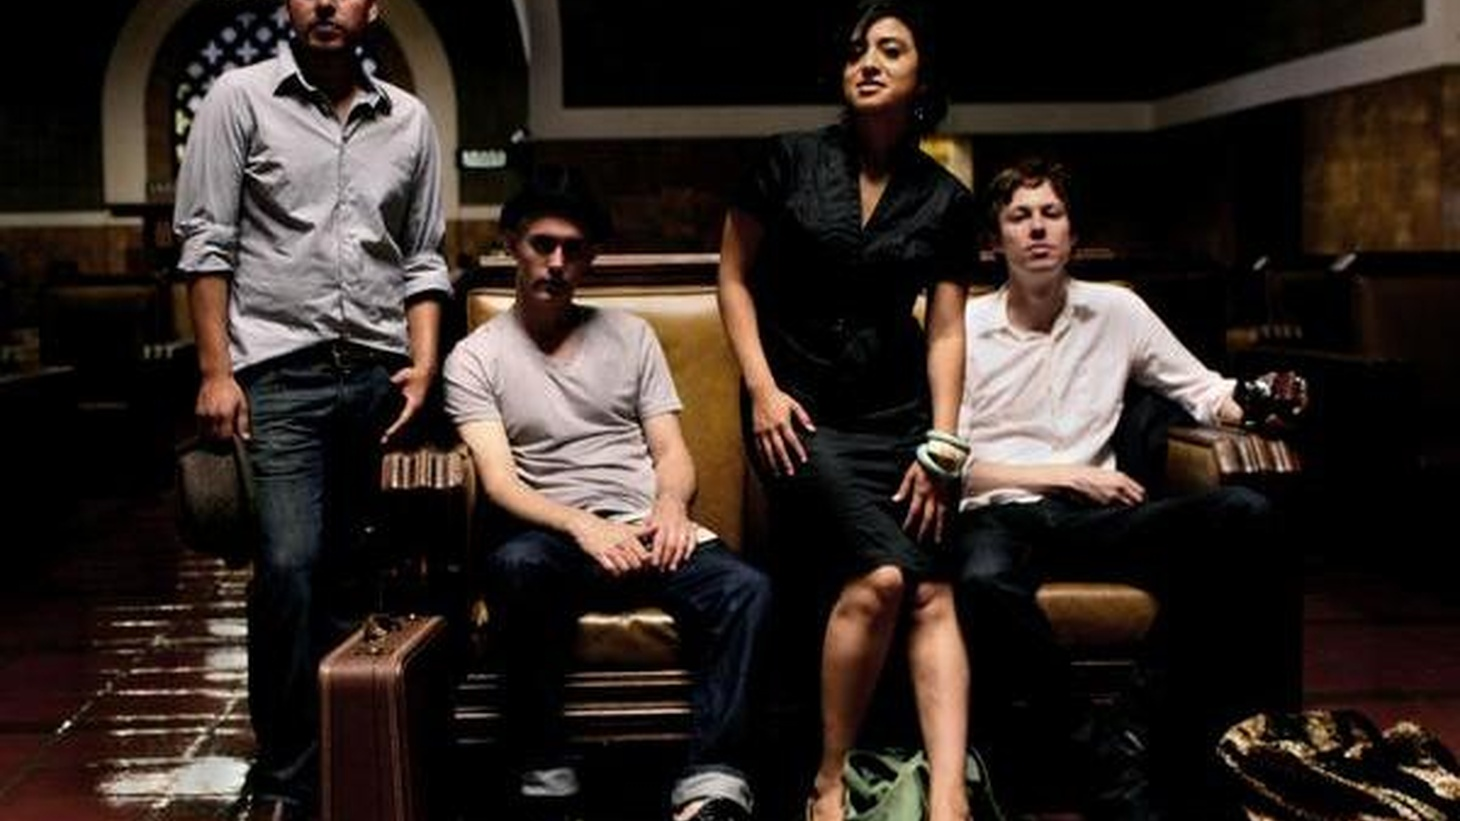 A standout band on the local Latin alternative scene, Wait. Think. Fast. use bilingual lyrics to explore their post-punk musings when they join Morning Becomes Eclectic at 11:15am.